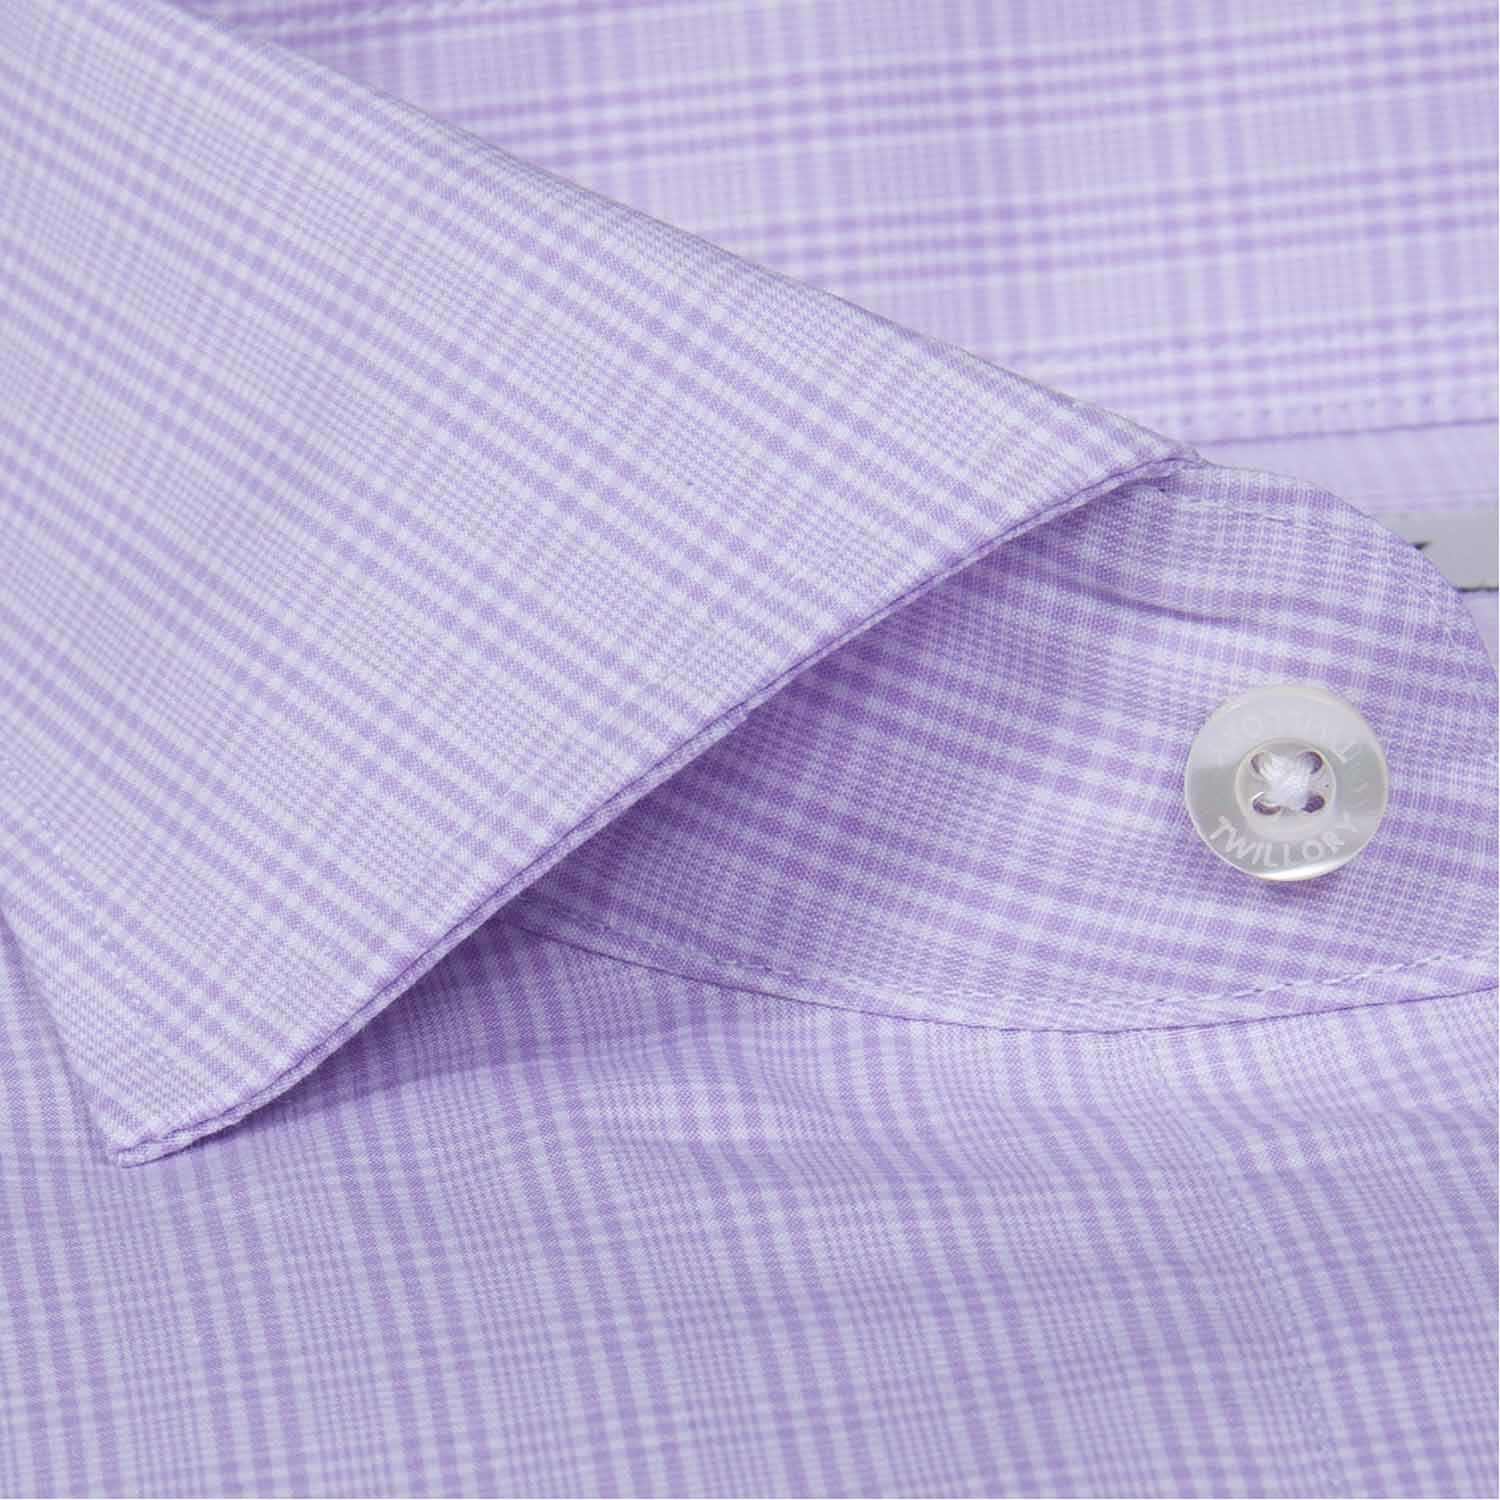 Button Up Dress Shirt Purple Plaid Tailored 15 Neck